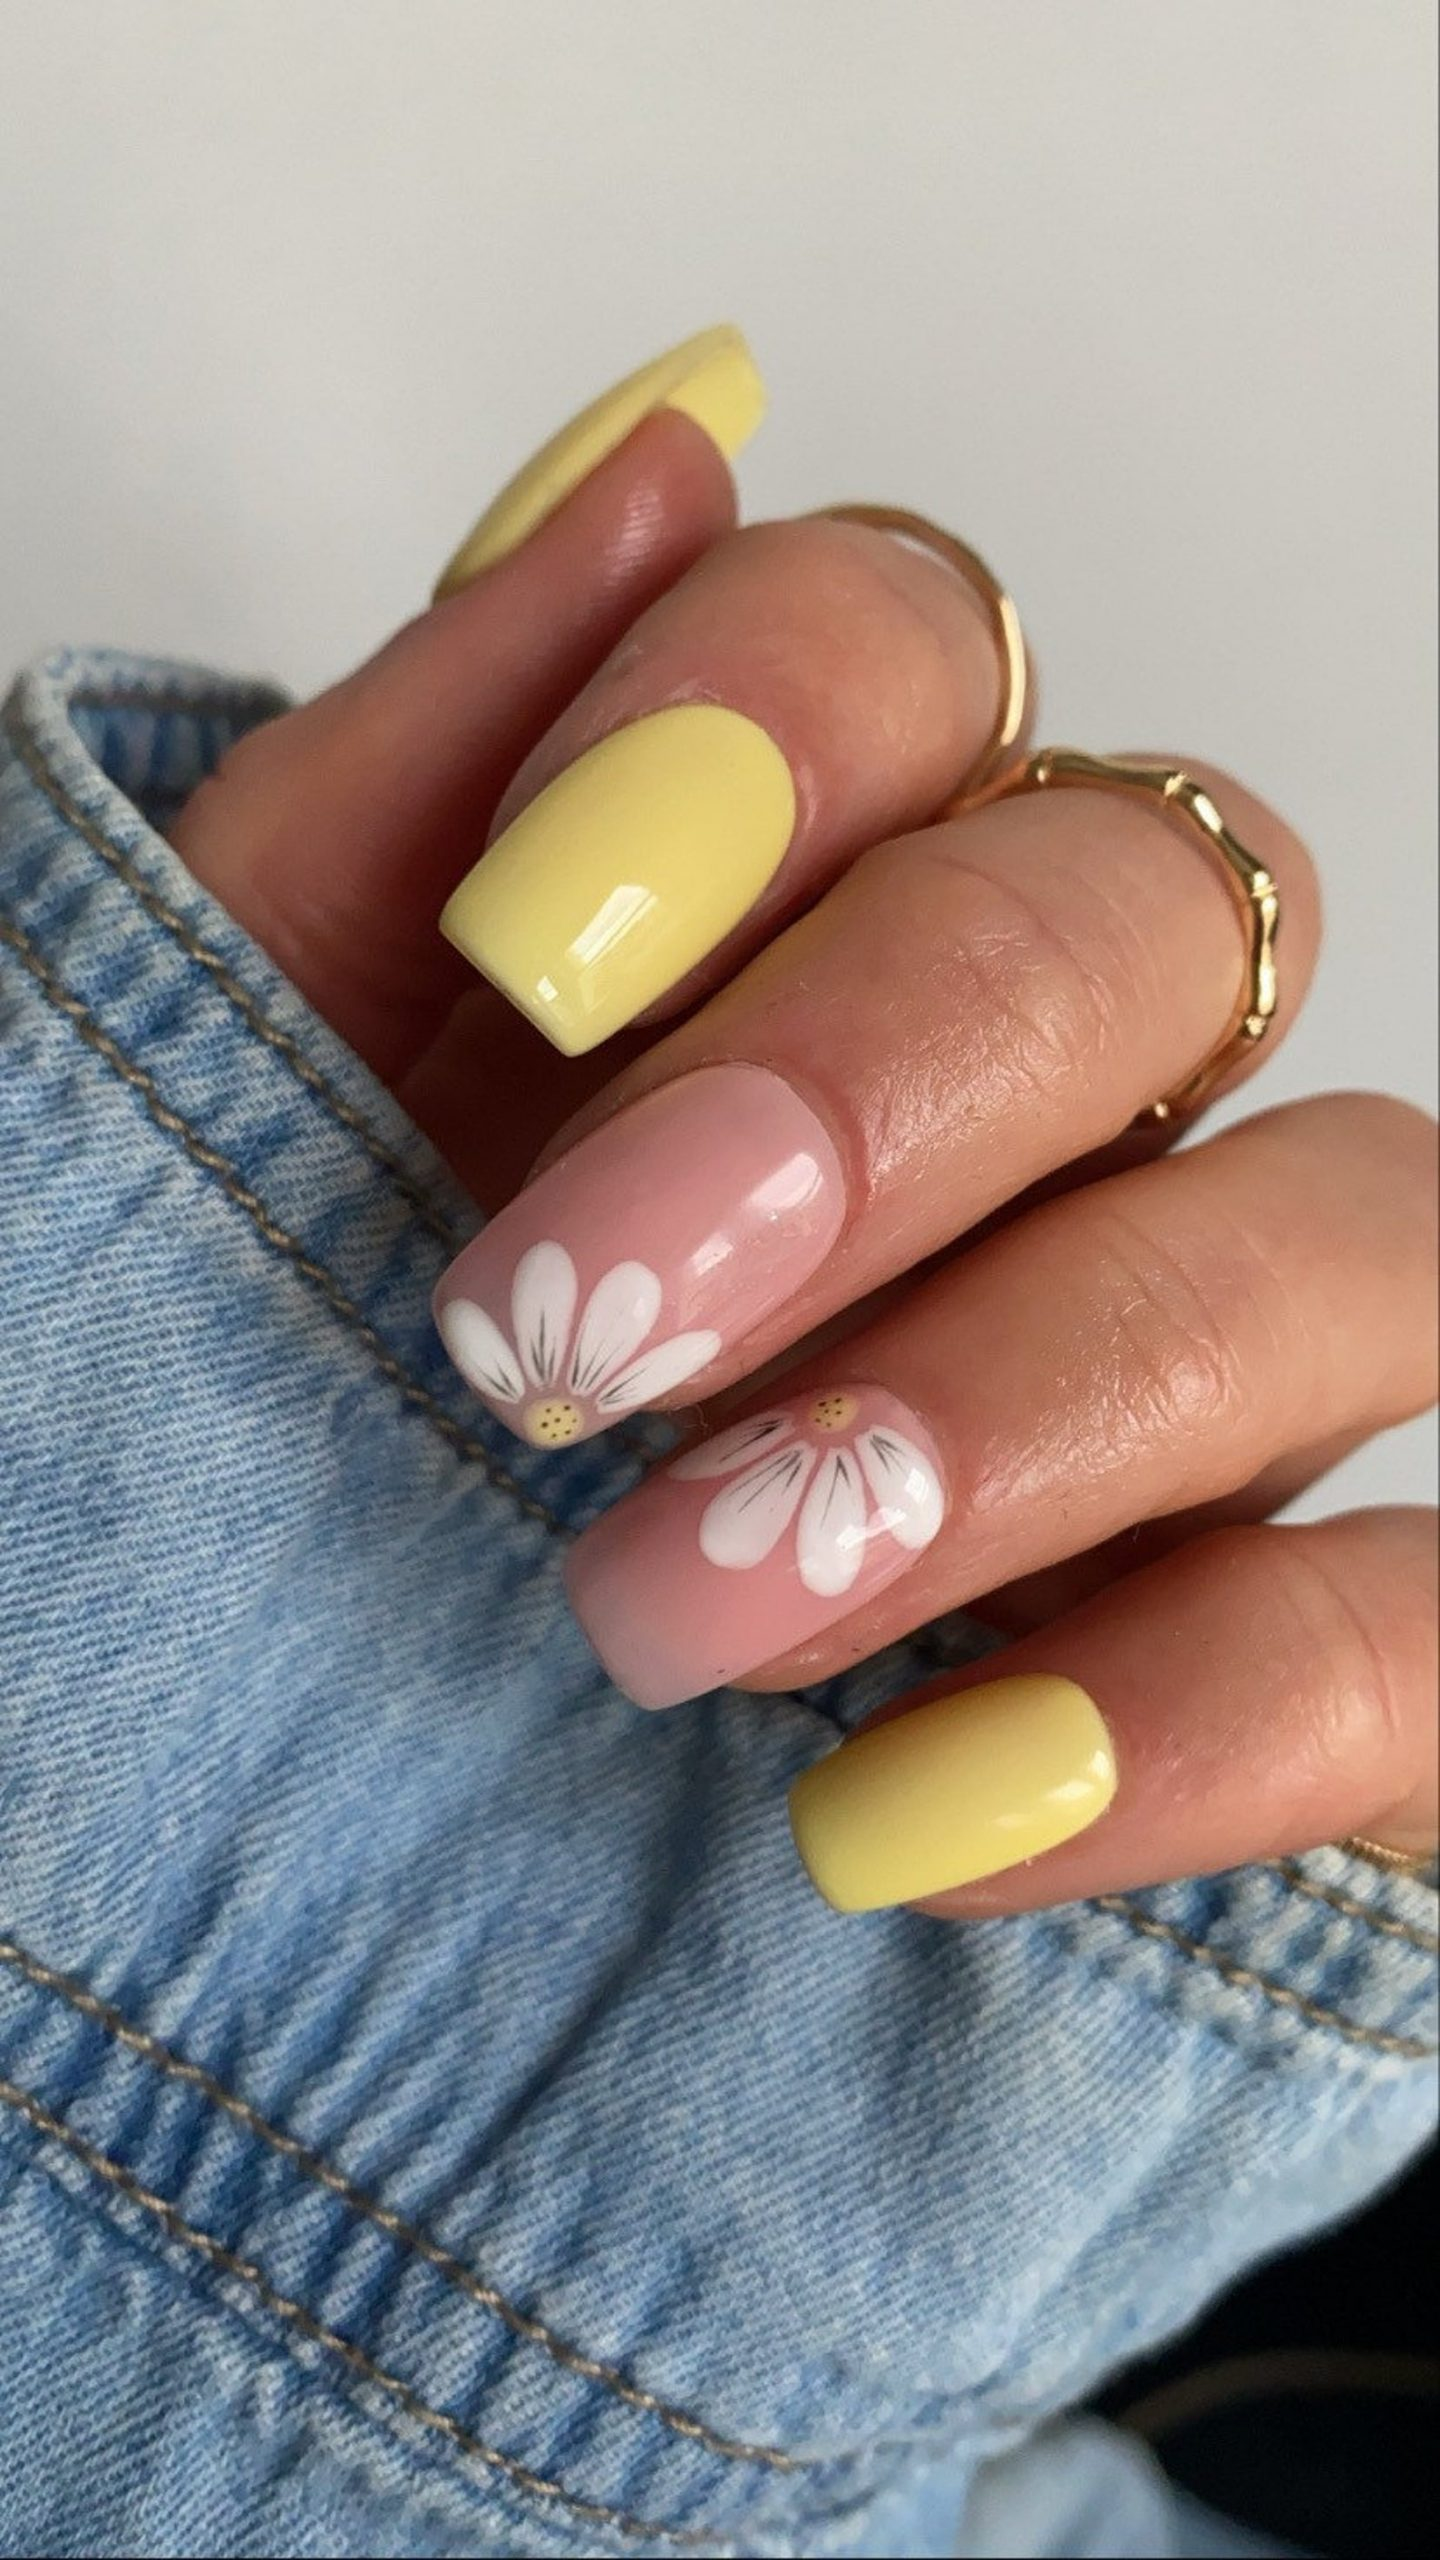 Pale yellow daisy nails with flower nail art